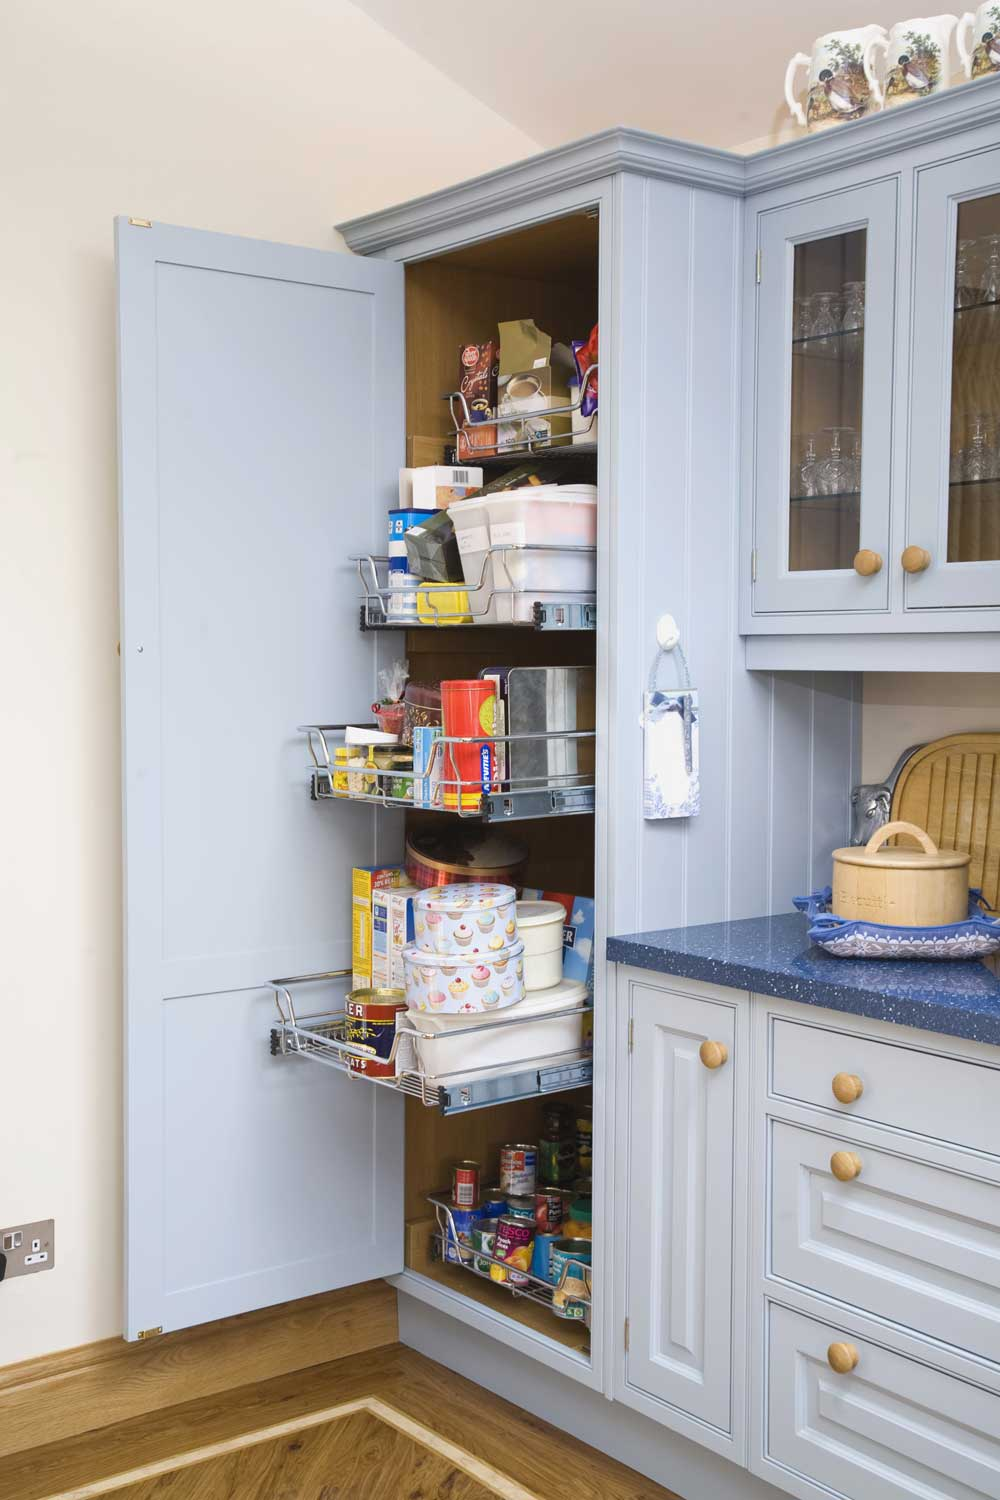 Kitchen cupboard with slide out wire drawers for easier access